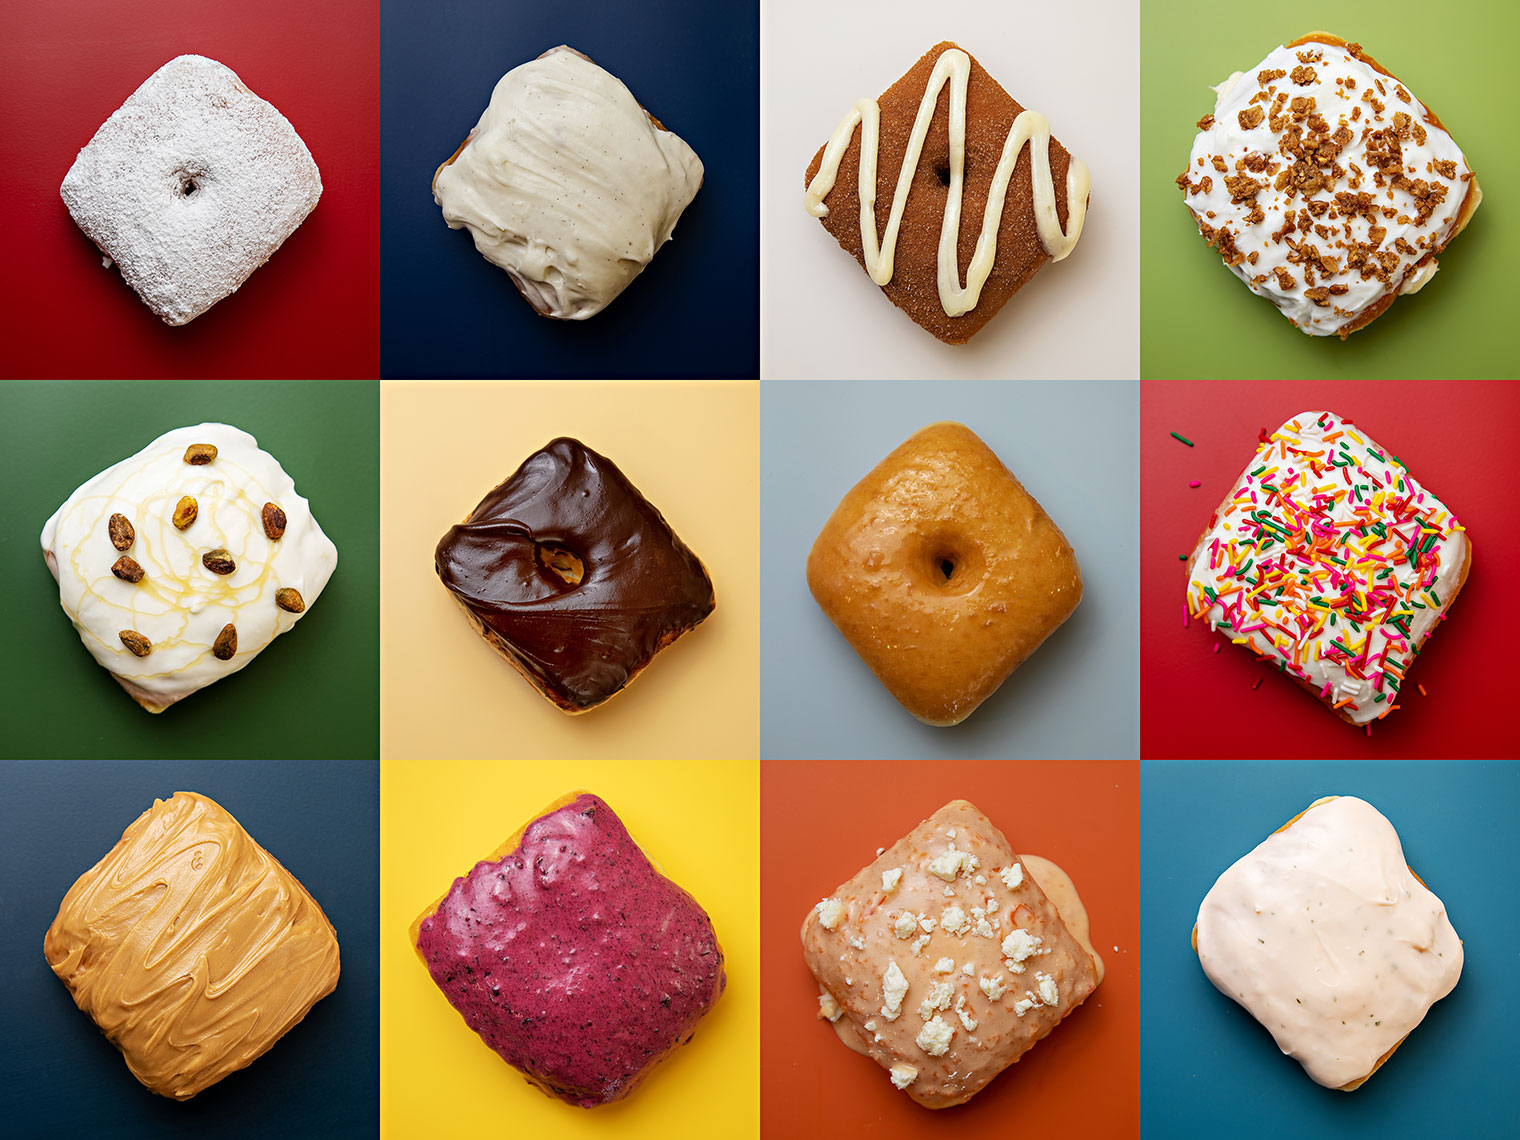 doughnuts_group